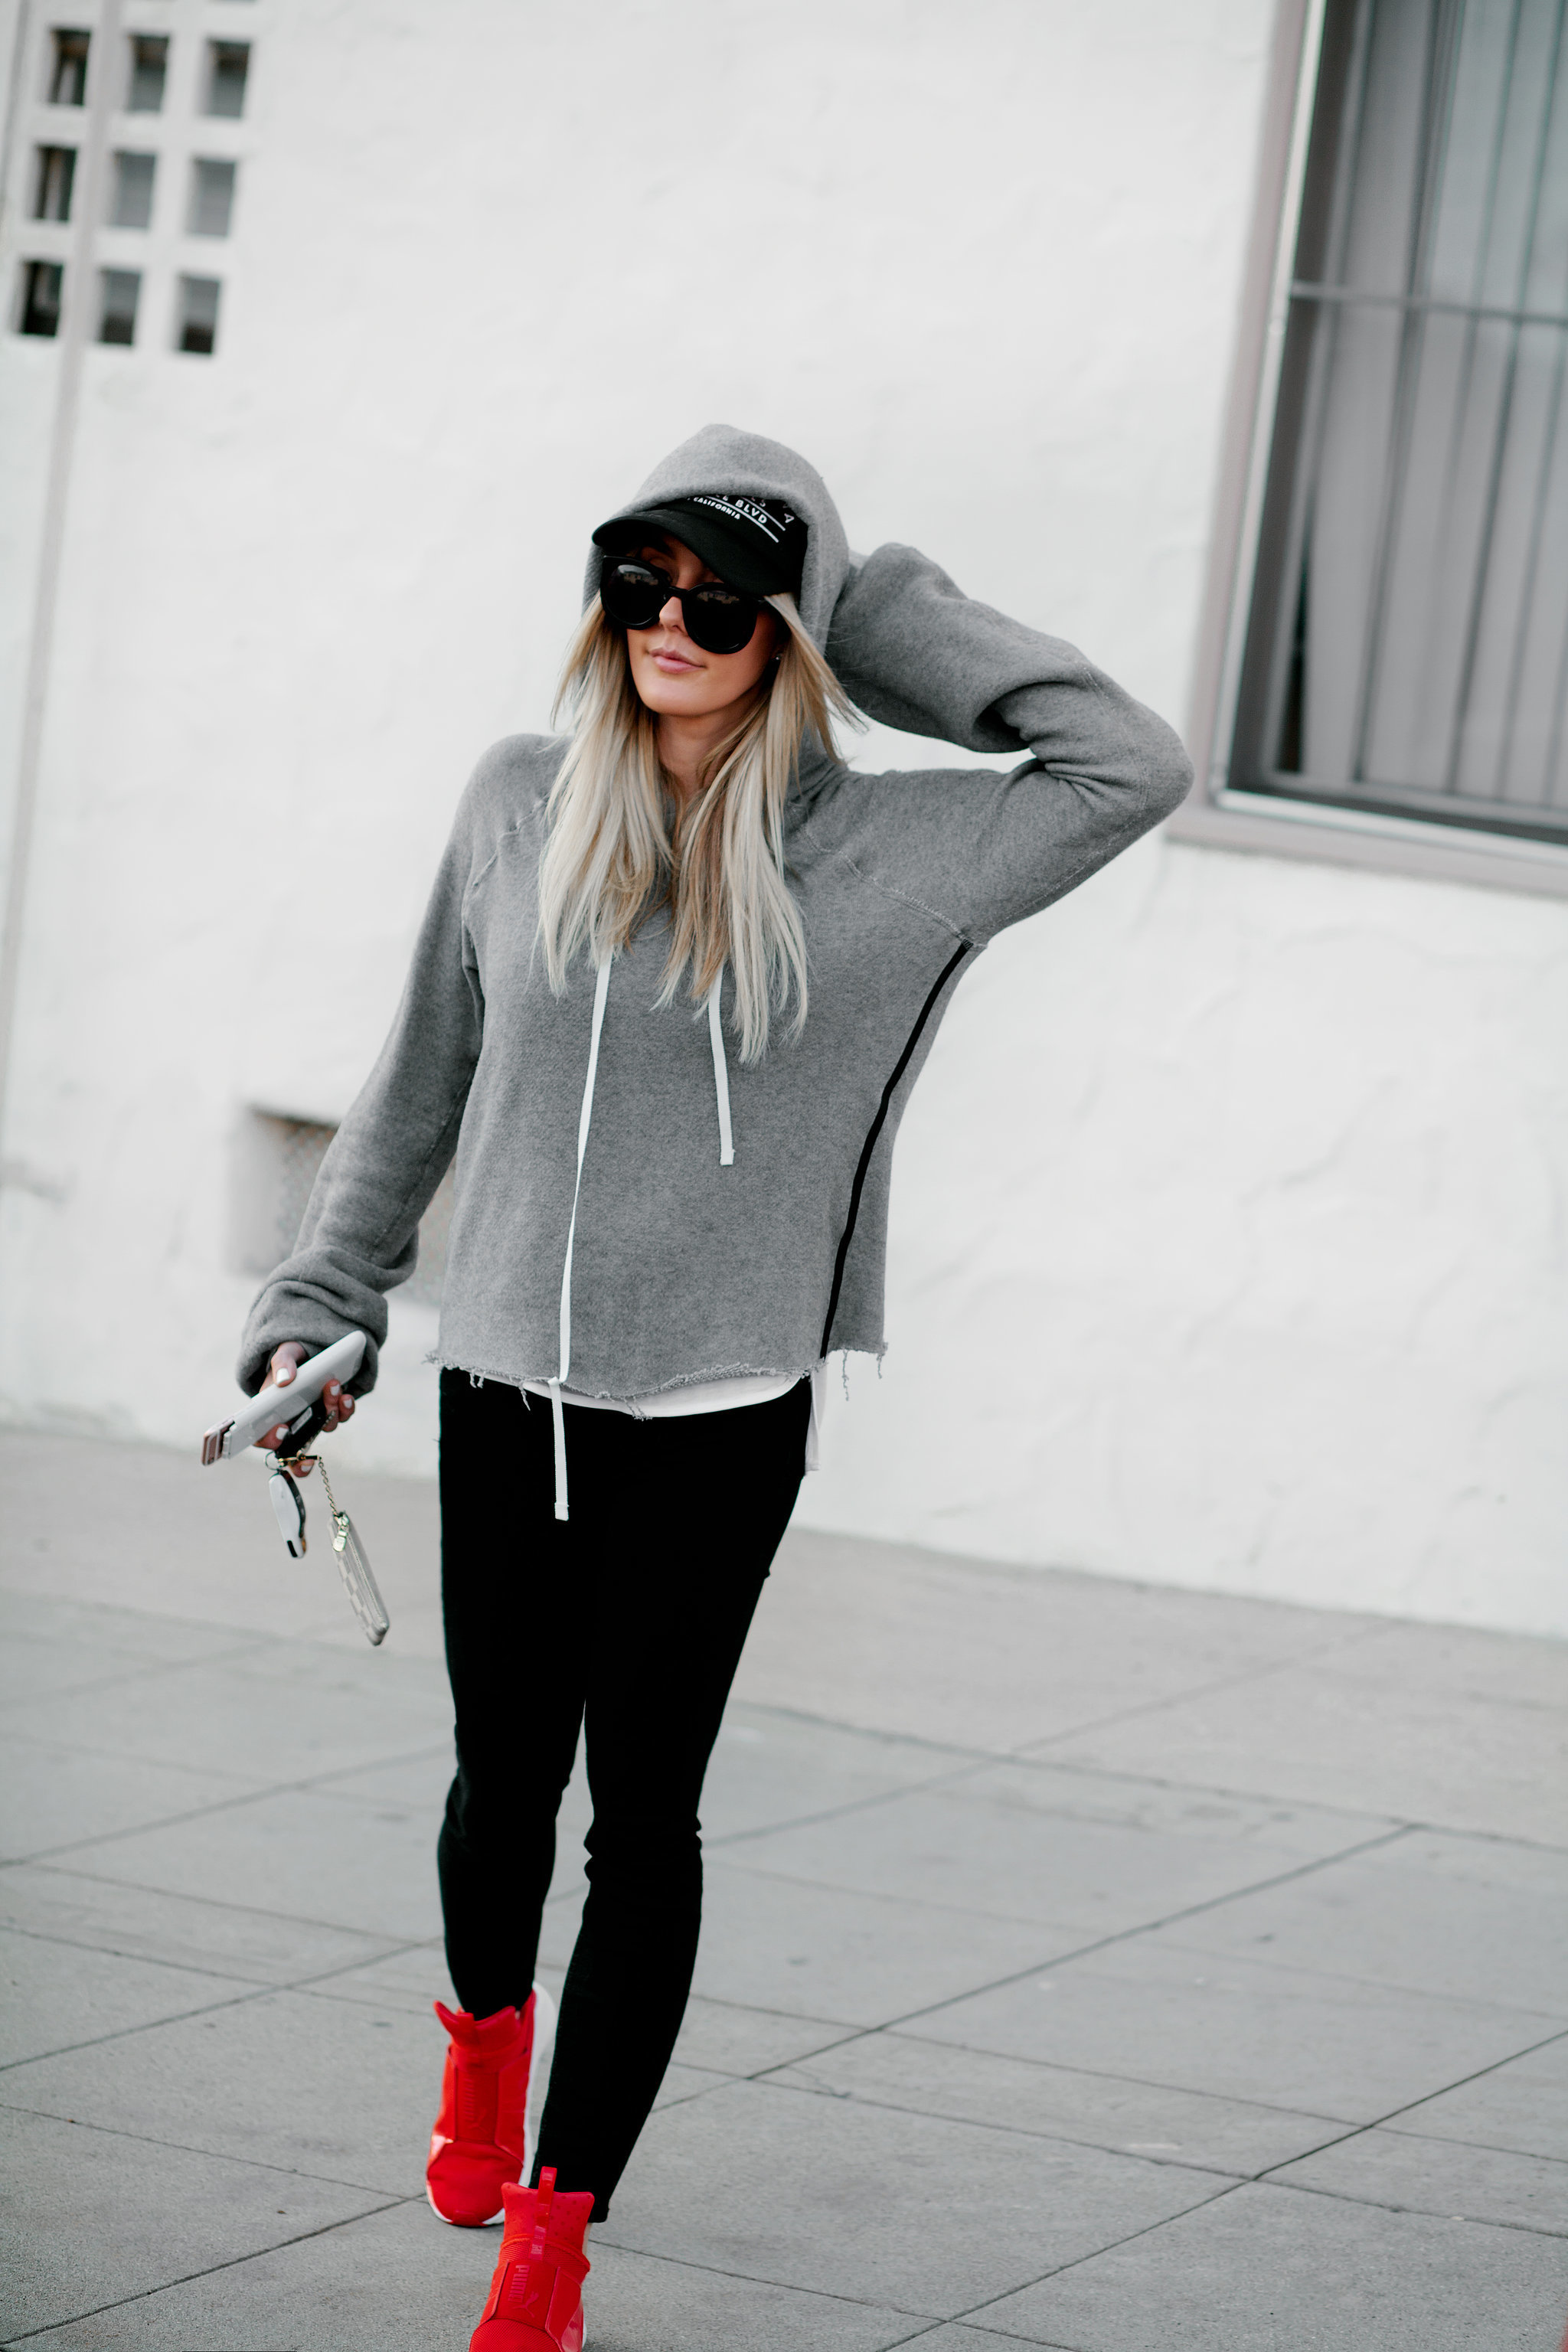 sneaker trends by PUMA fierce | The Skinny Confidential